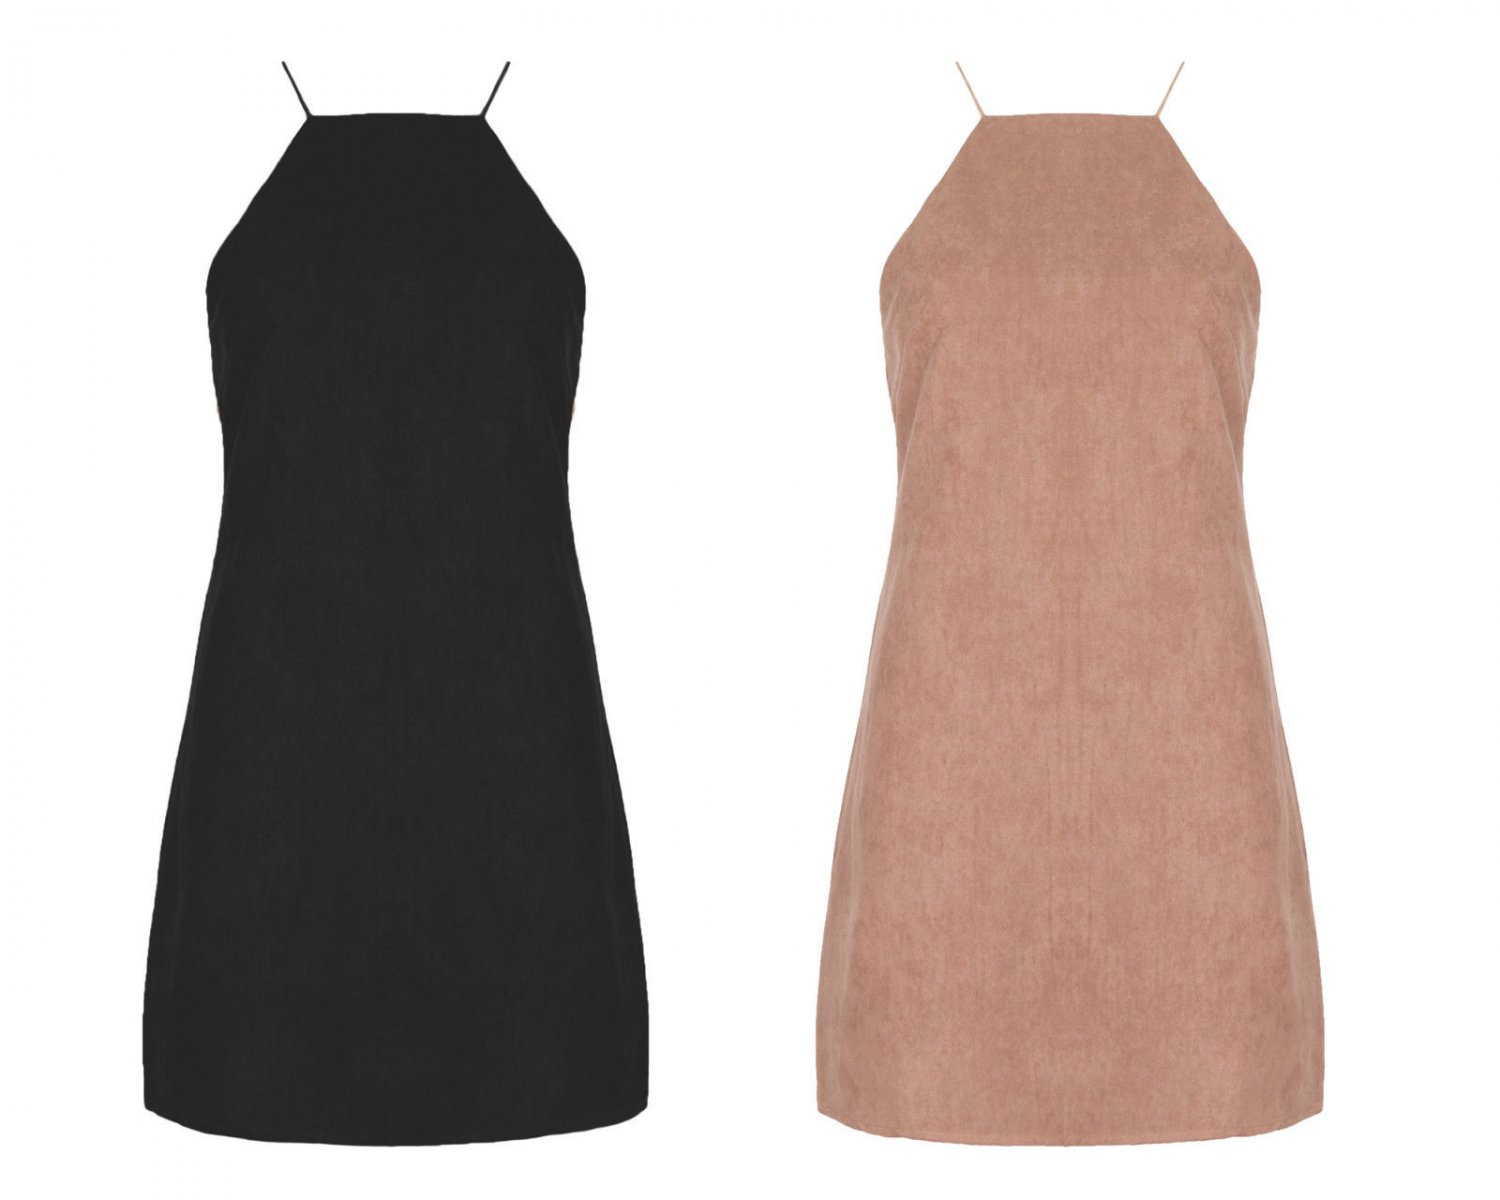 New Women Suede Mini Sexy Dress Rouleaux Straps Tunic Pinafore A Line UK Size 10 Black